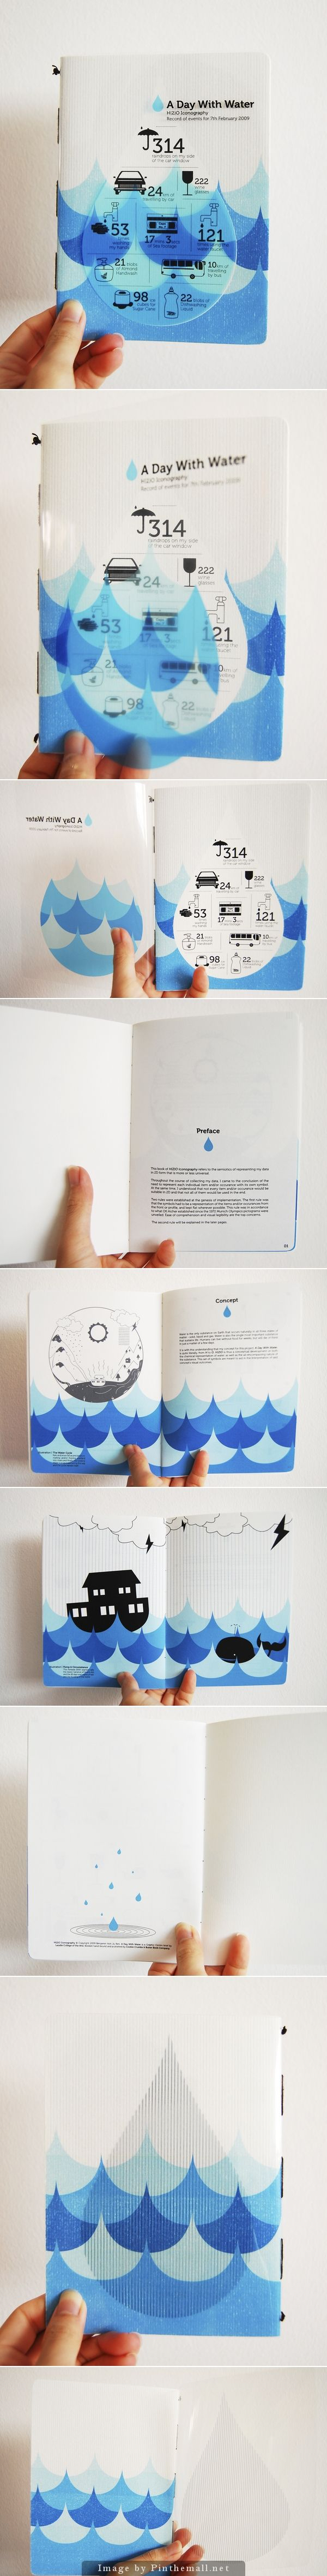 this book with the simple visual narrative idea. the book use blue drawing with the sea wave shape and water drop idea through the whole book. as image show we can see the water idea using in each page form. the text format with sort column placement on the empty white space to make the graphic and text balance.